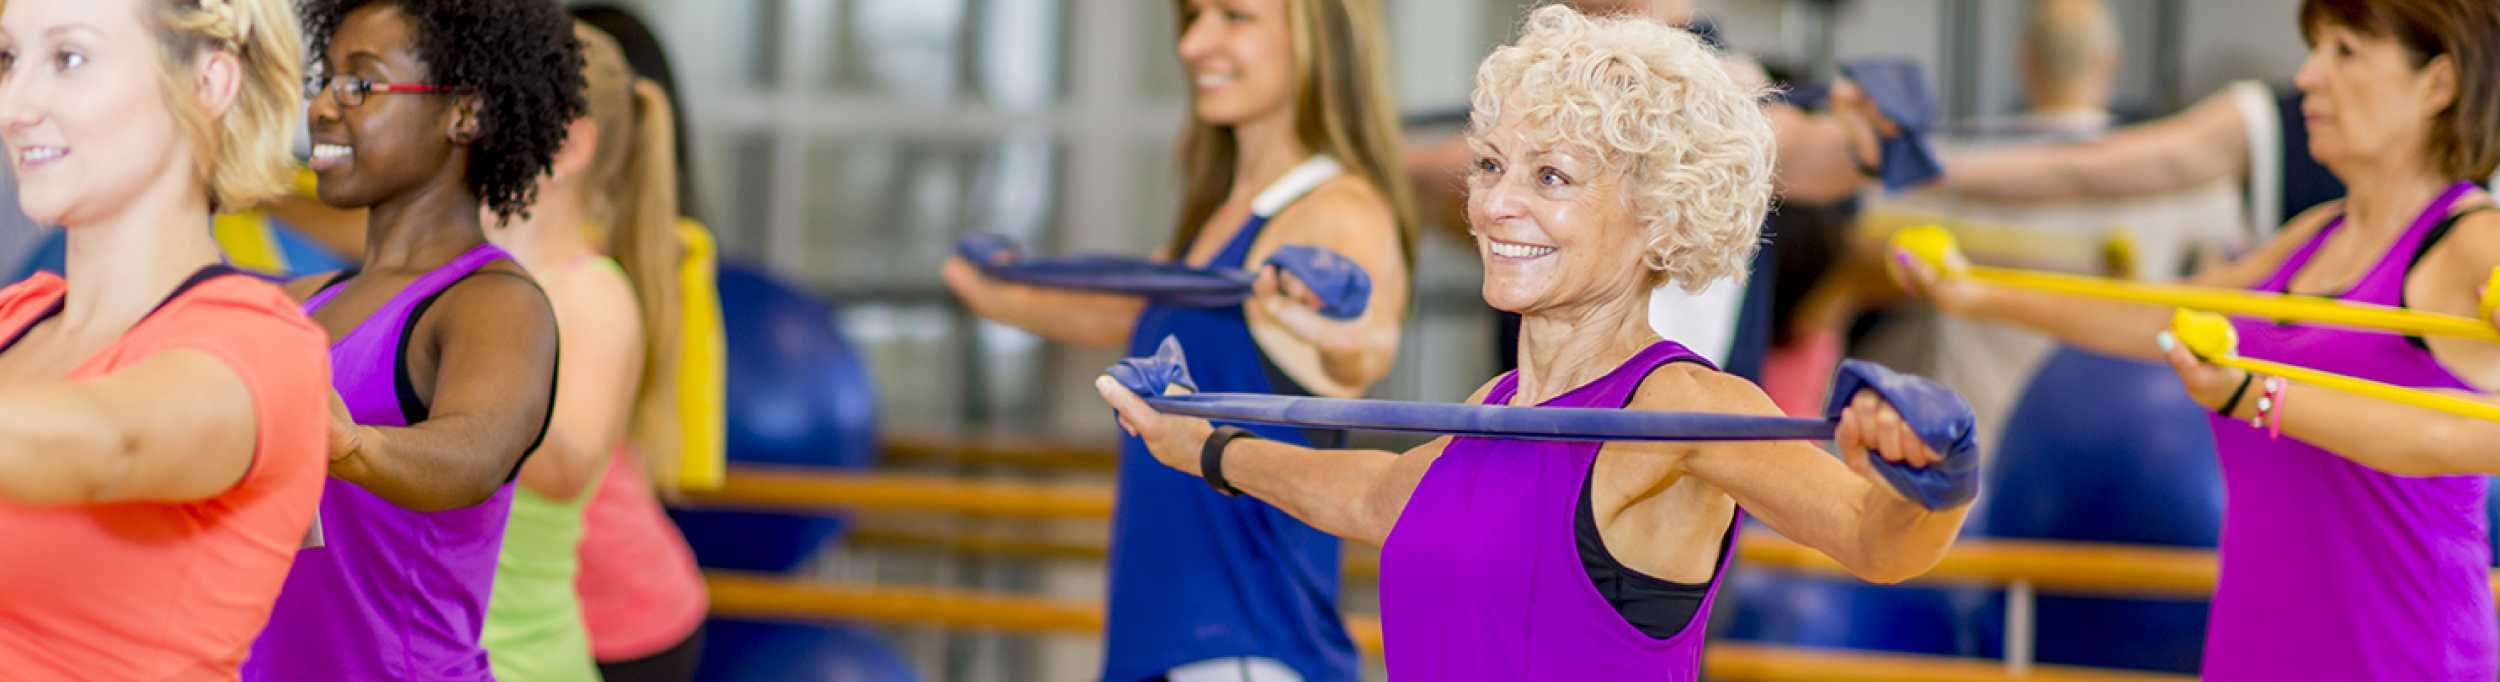 local fitness, exercise programs and personal training in tahoe and truckee